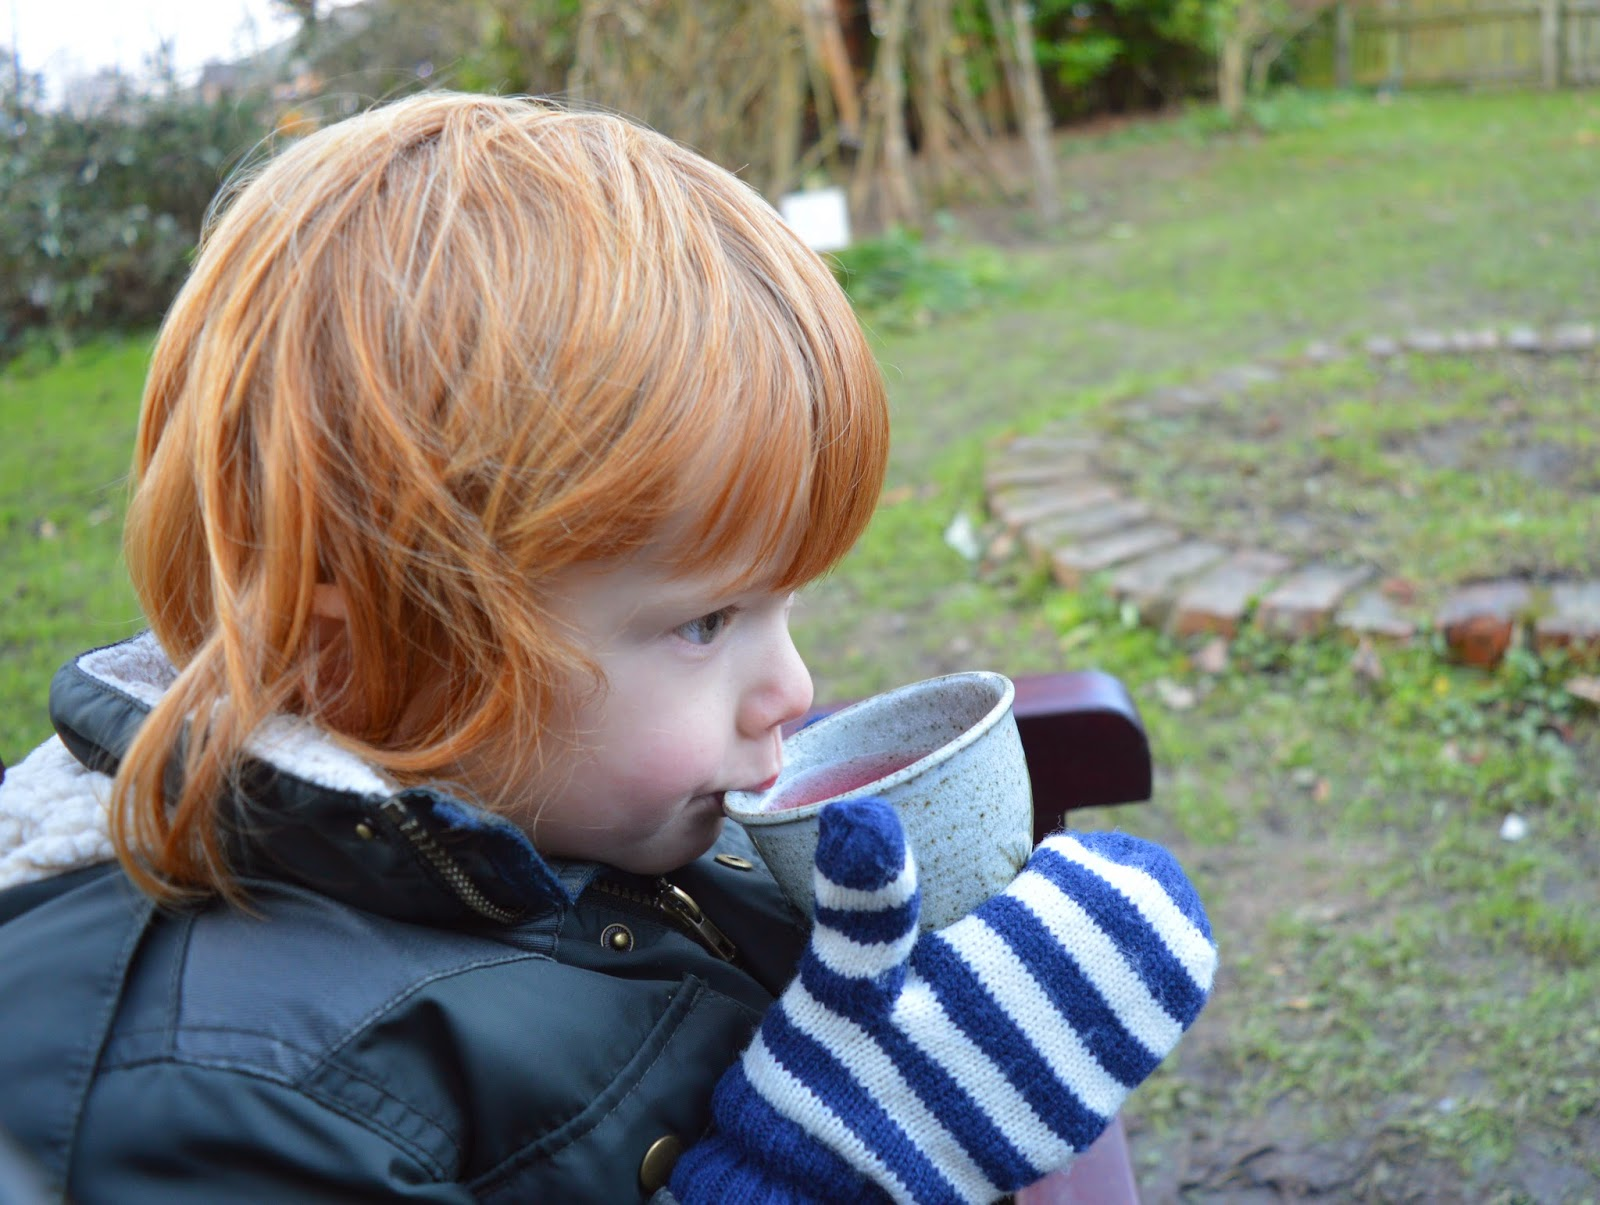 Santa's Grotto at Rising Sun Countryside Centre, North Tyneside - A review - drinking warm juice by the campfire